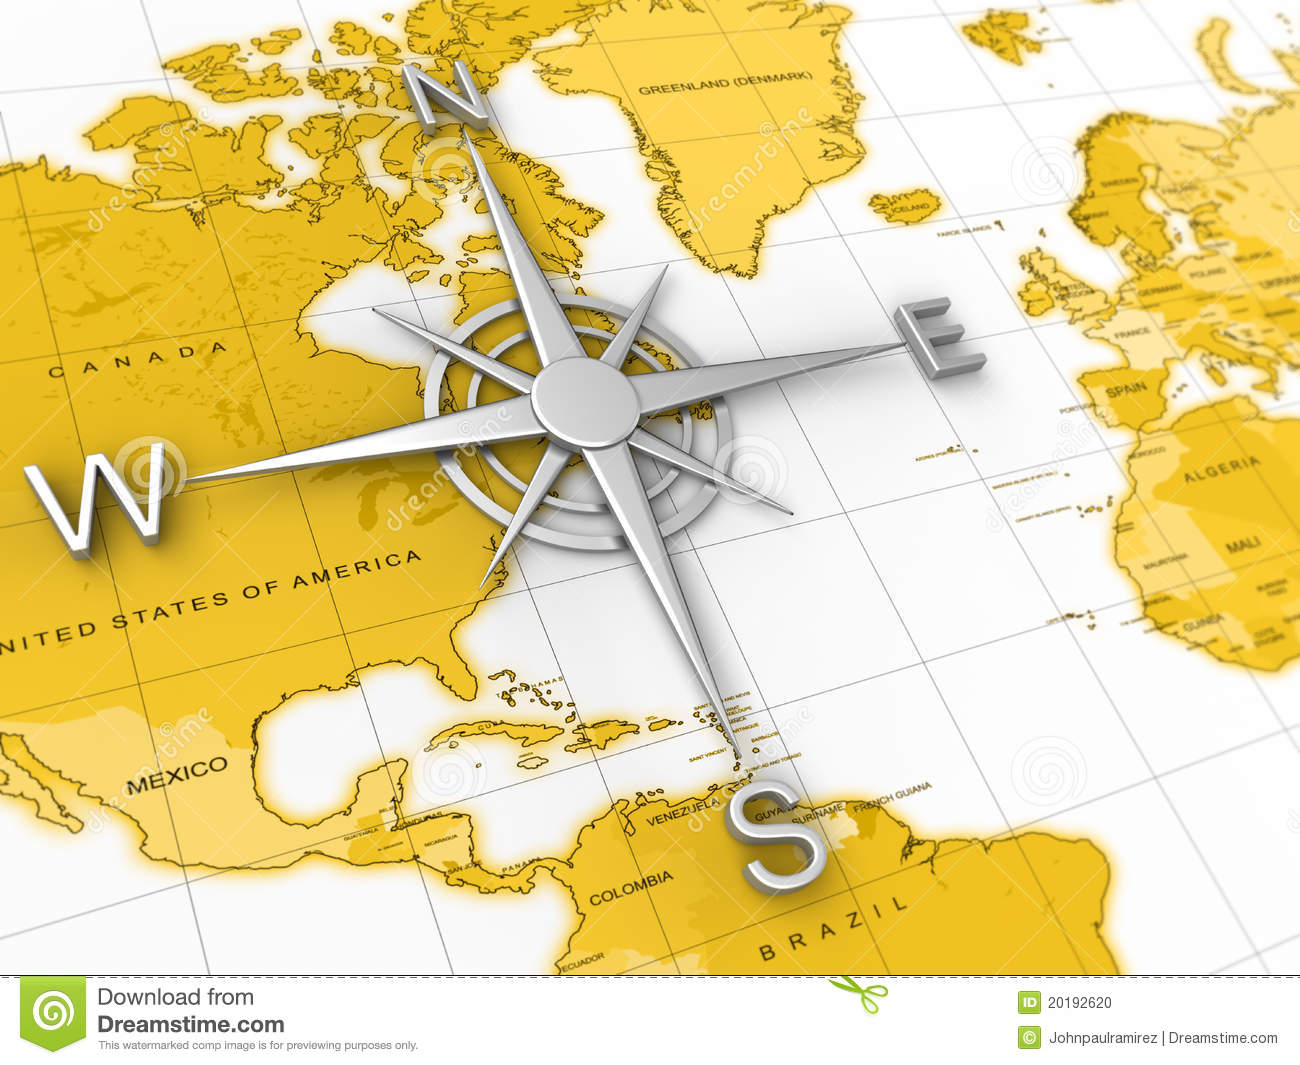 Deciding stock illustrations royalty free gograph - Compass World Map Travel Expedition Geography Stock Photo